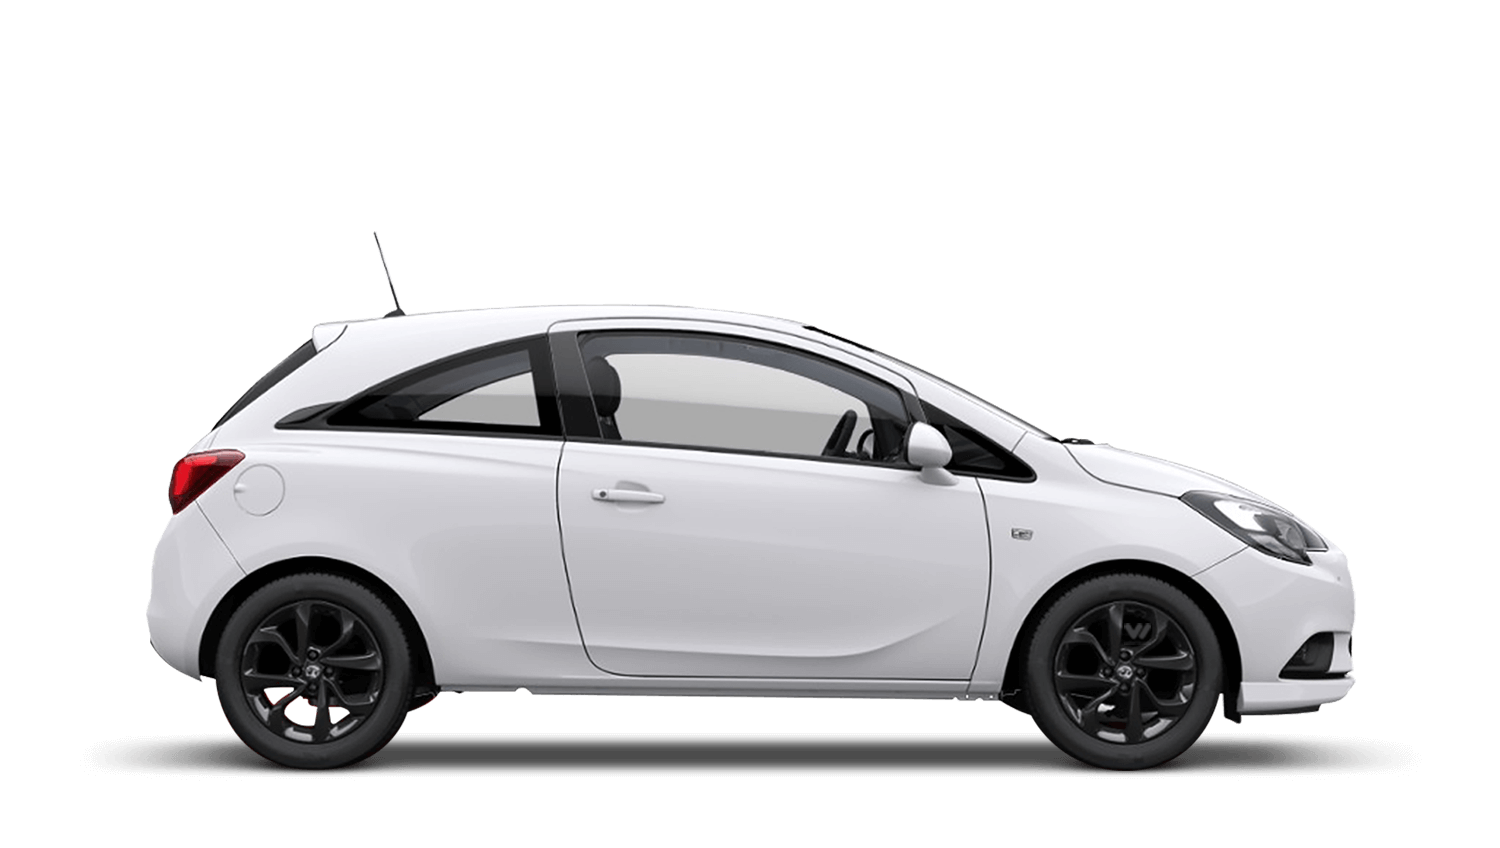 Corsa Griffin PCH Offer 1.4 75 3DR